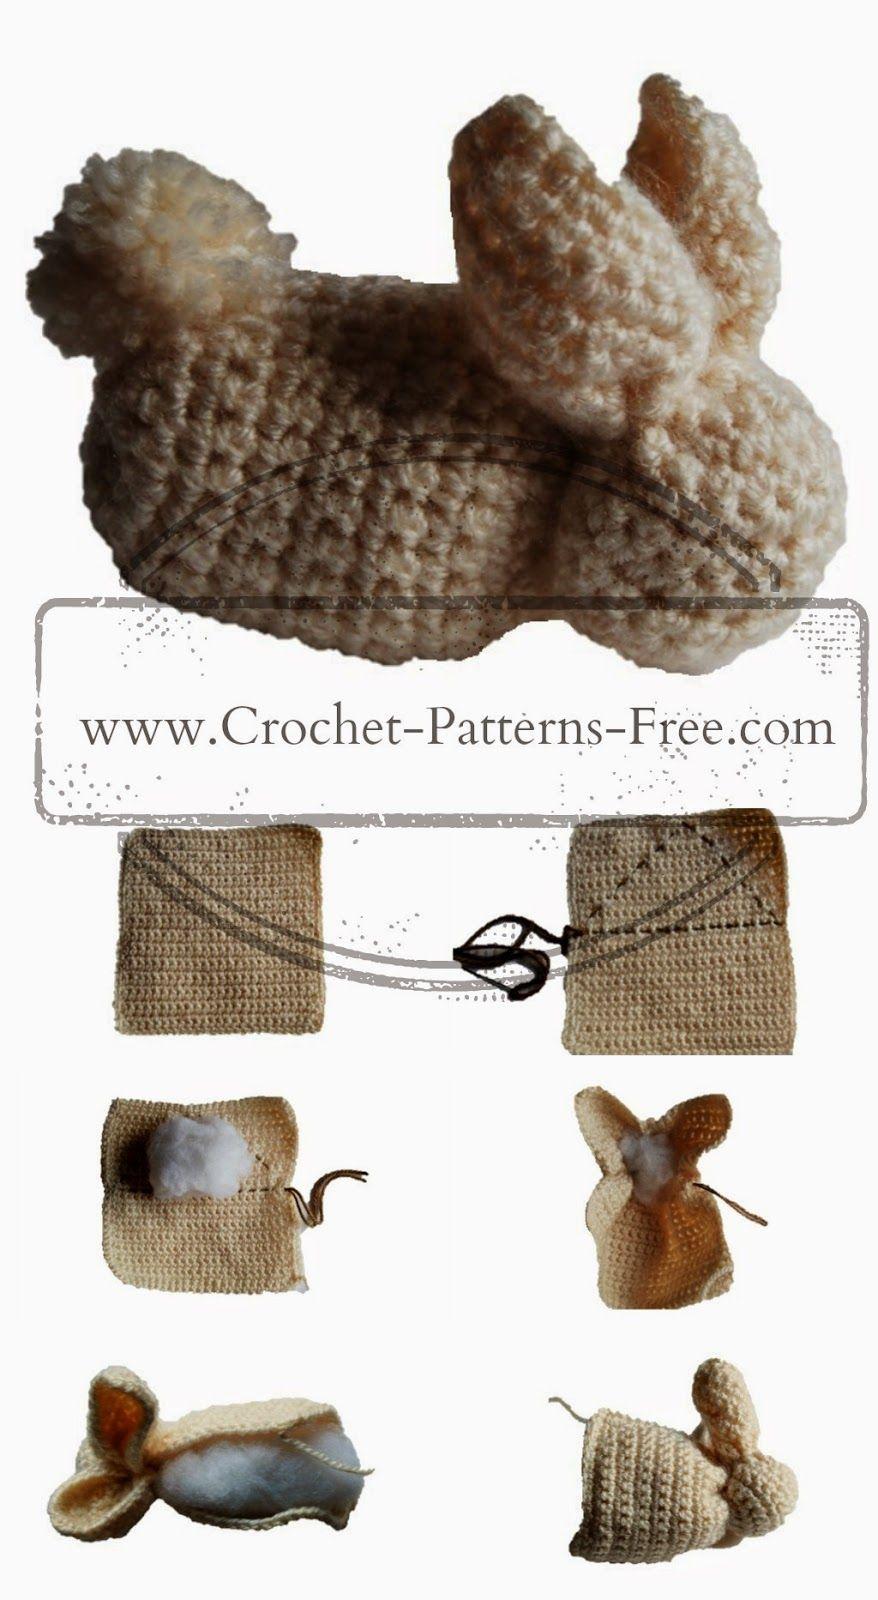 Free Crochet Patterns and Designs by LisaAuch: Easy Cute Bunny Made ...